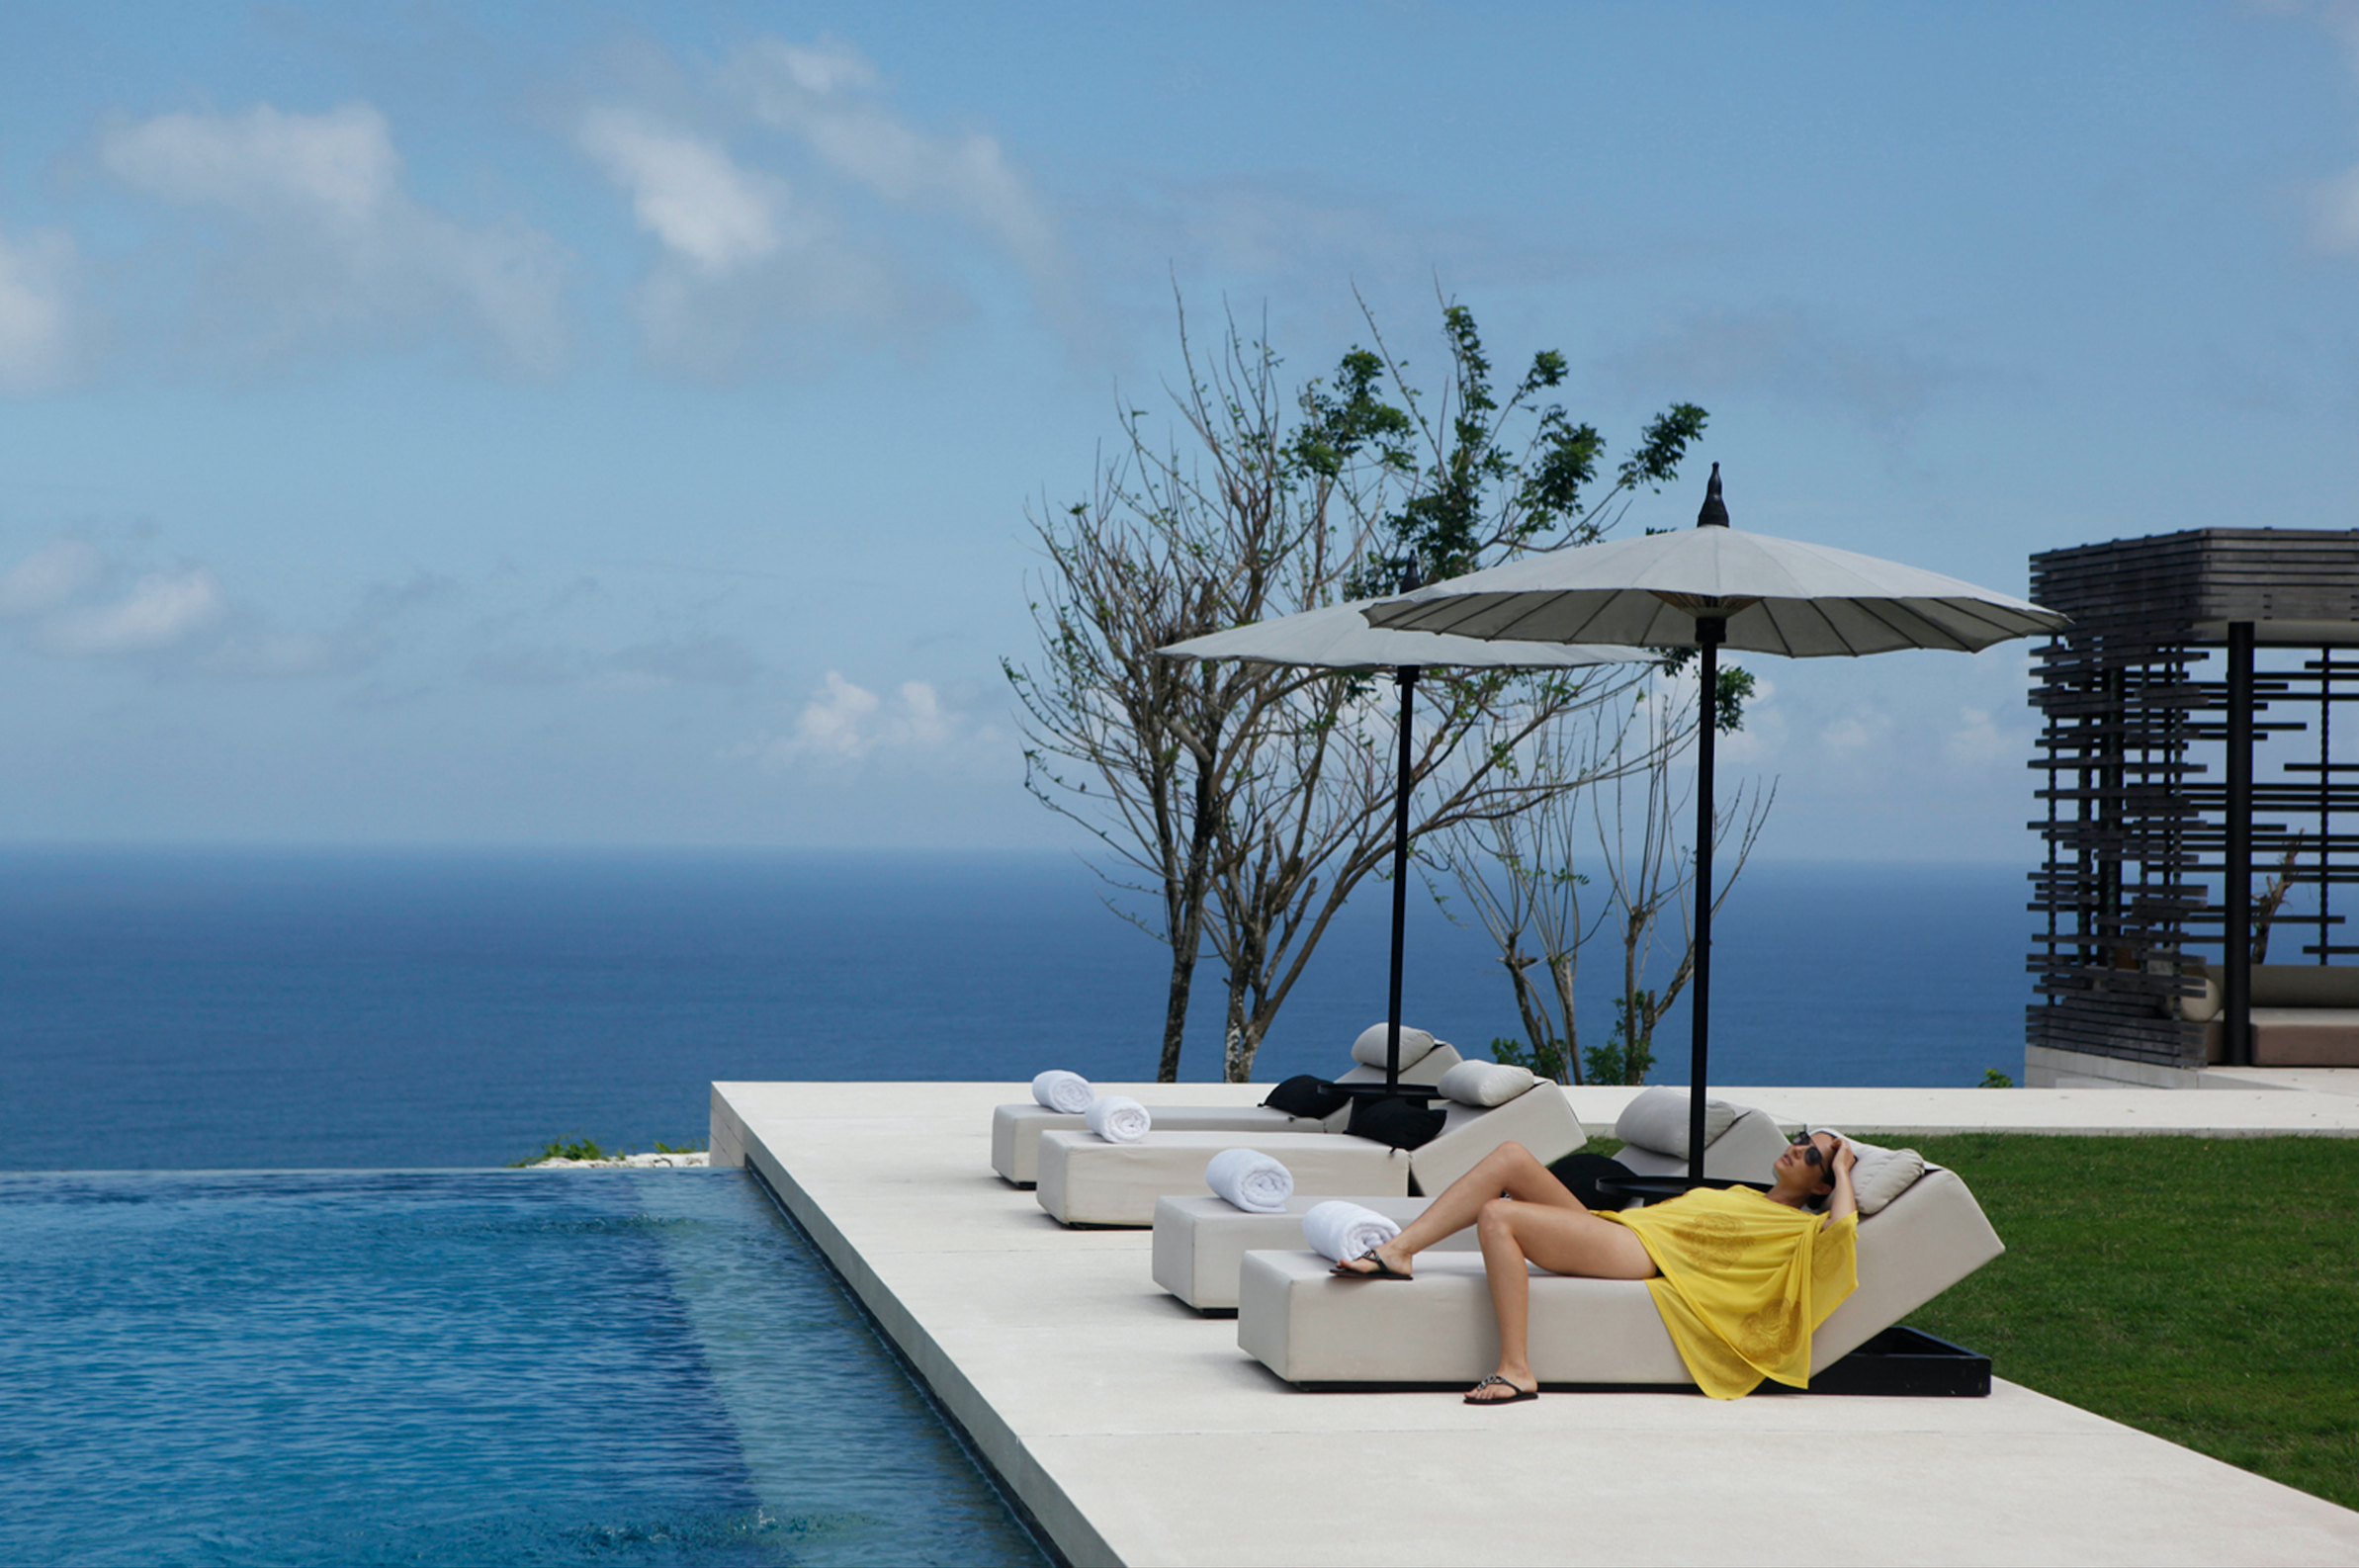 Stay in luxe villas on eco-holiday in Bali